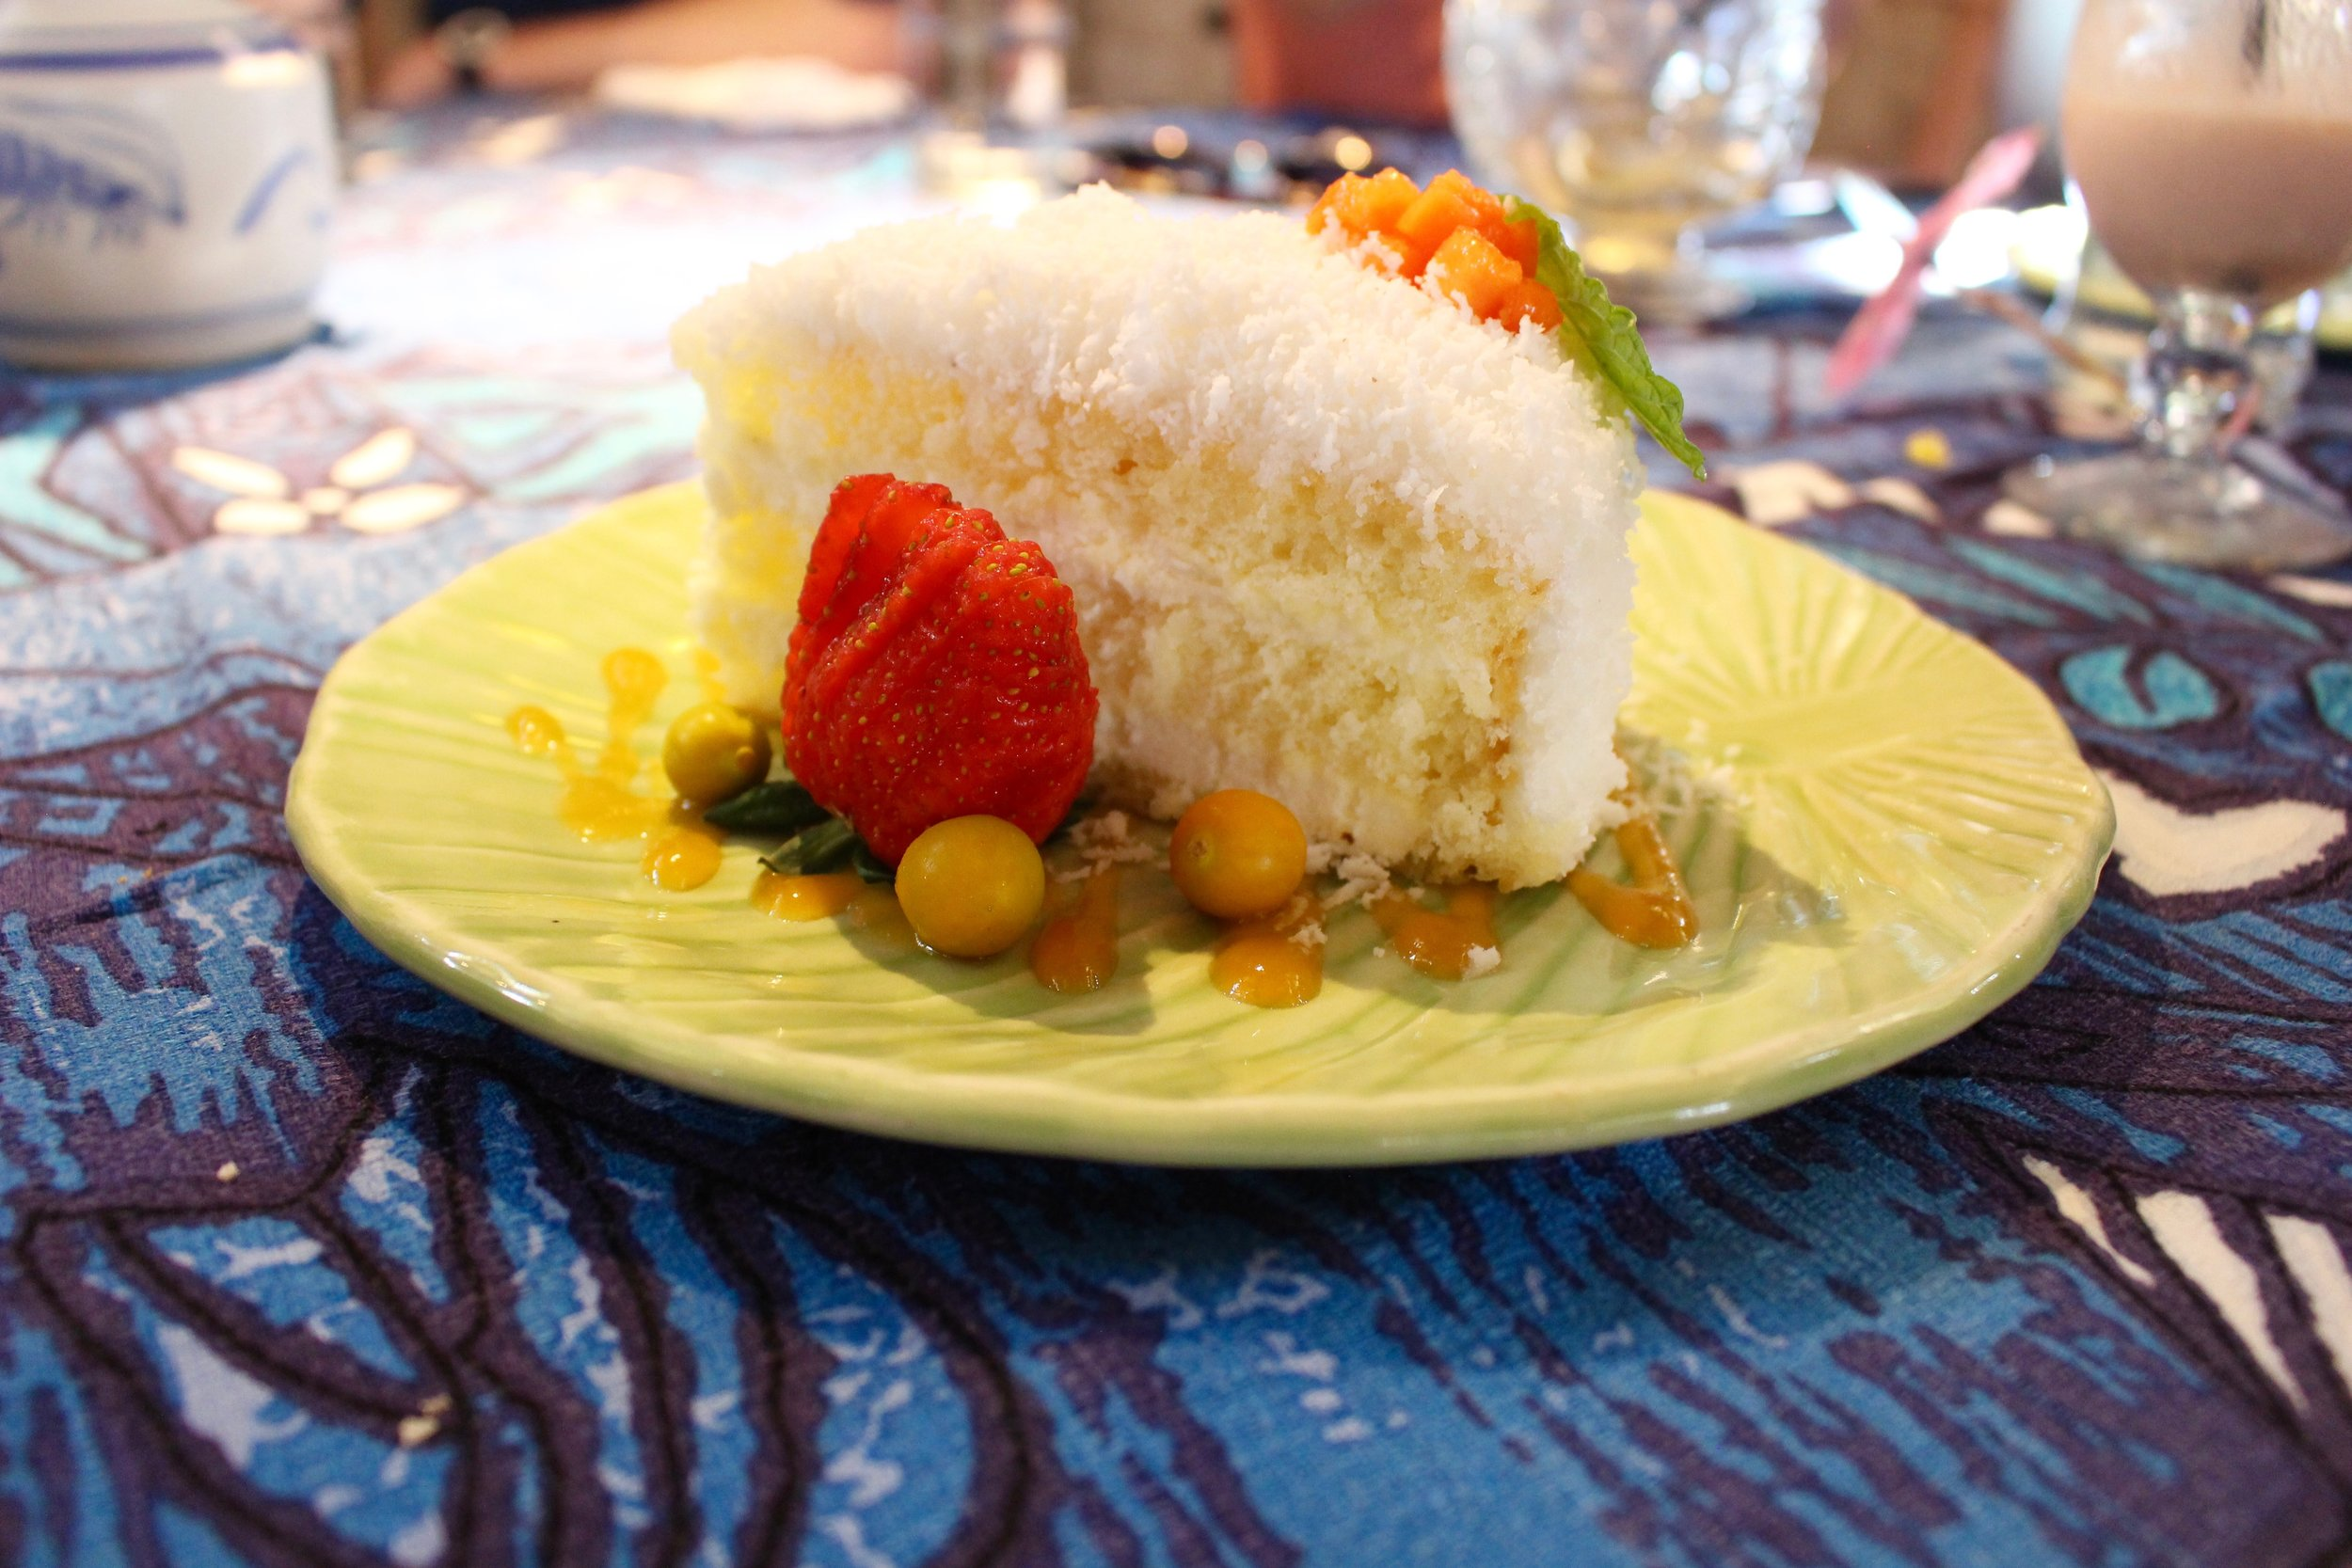 This was an off-menu coconut cake.